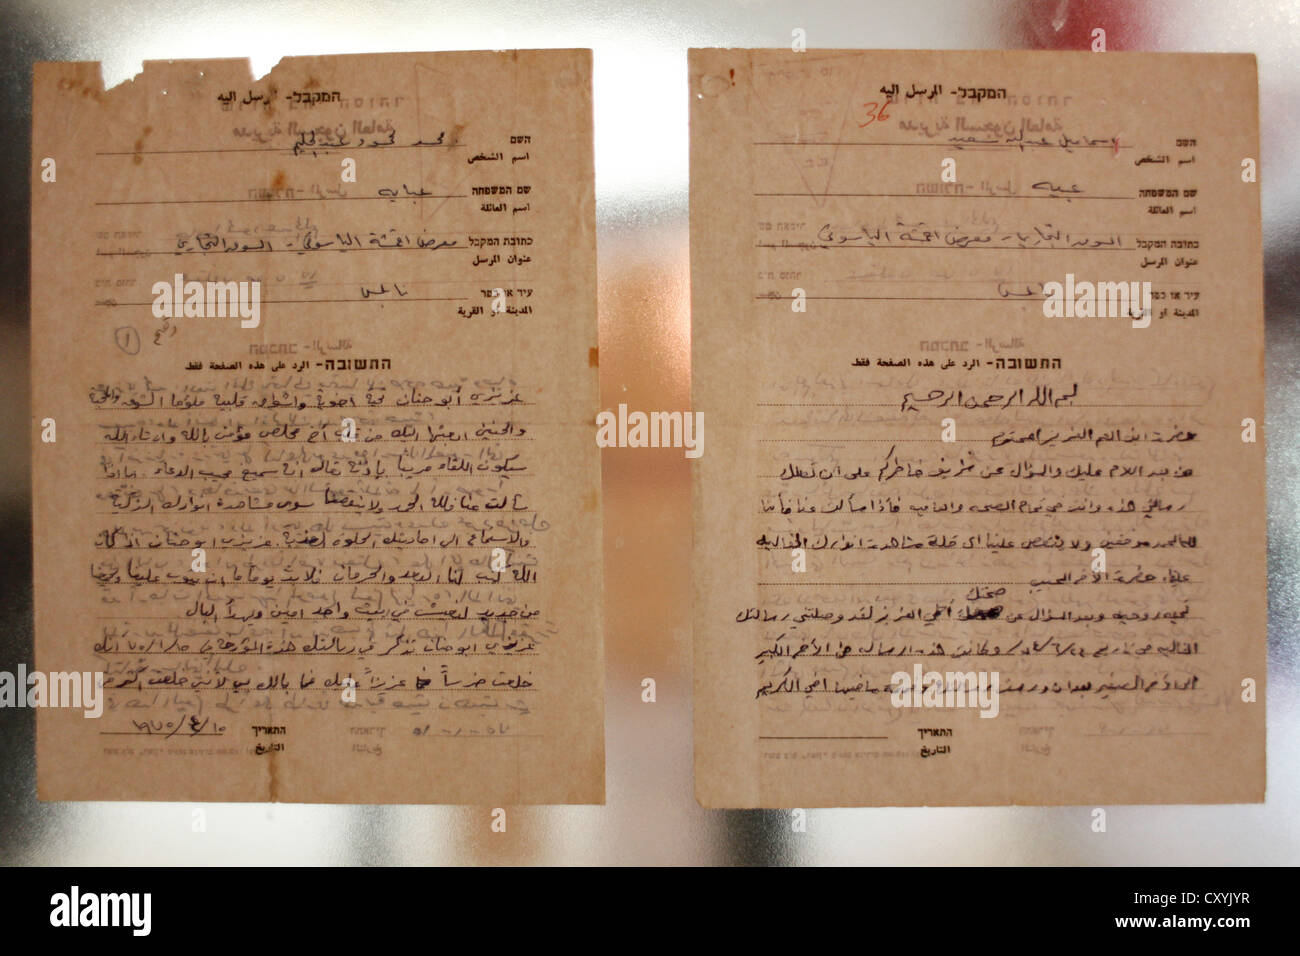 Request letters written by Palestinian prisoners displayed at the Abu-Jihad Museum in Al Quds university in Abu Stock Photo